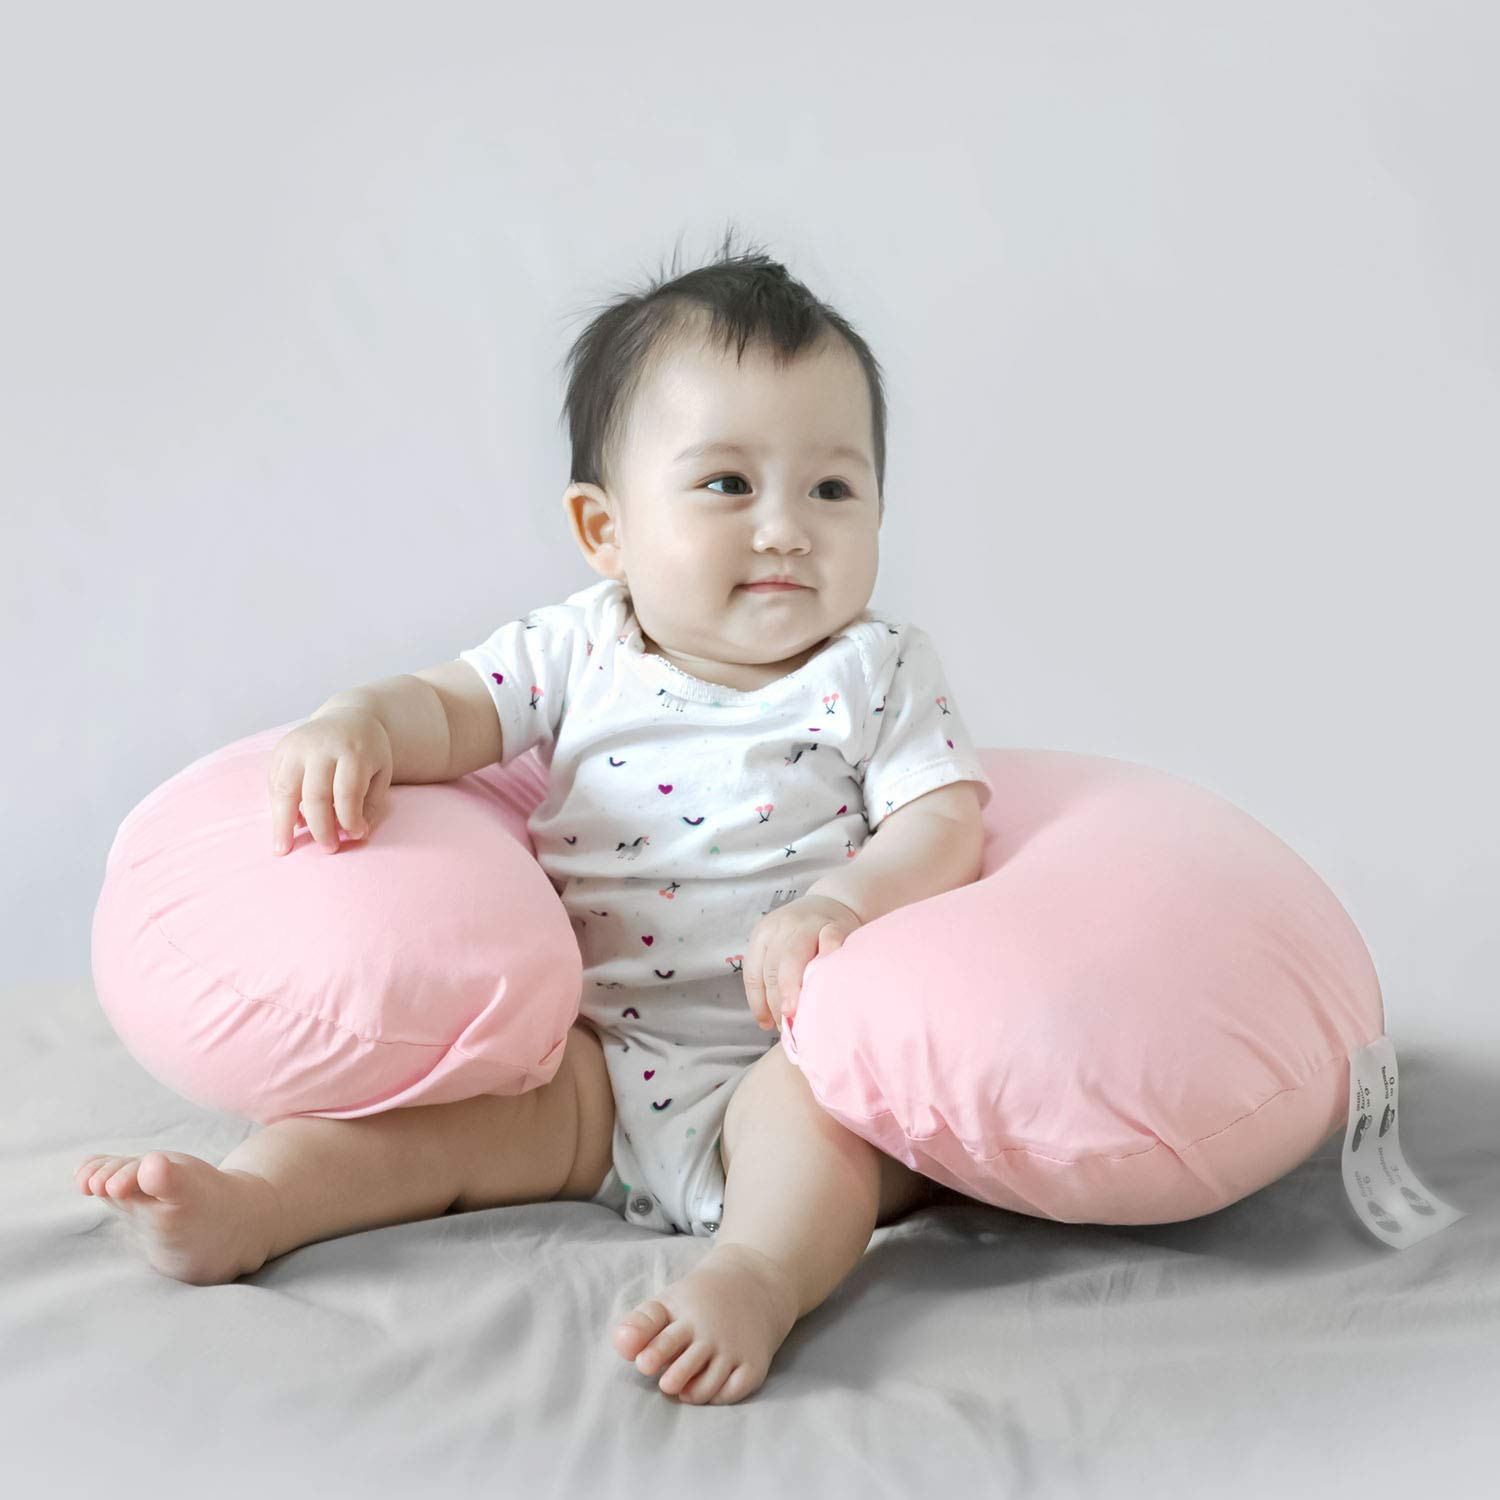 Egyptian Cotton Soft Hypoallergenic Feeding Pillow Slipcovers For Baby Boys TILLYOU Large Zipper Personalized Nursing Pillow Cover 2 Pack Navy /& Anchor Navy Blue Fits Standard Infant Support Pillow